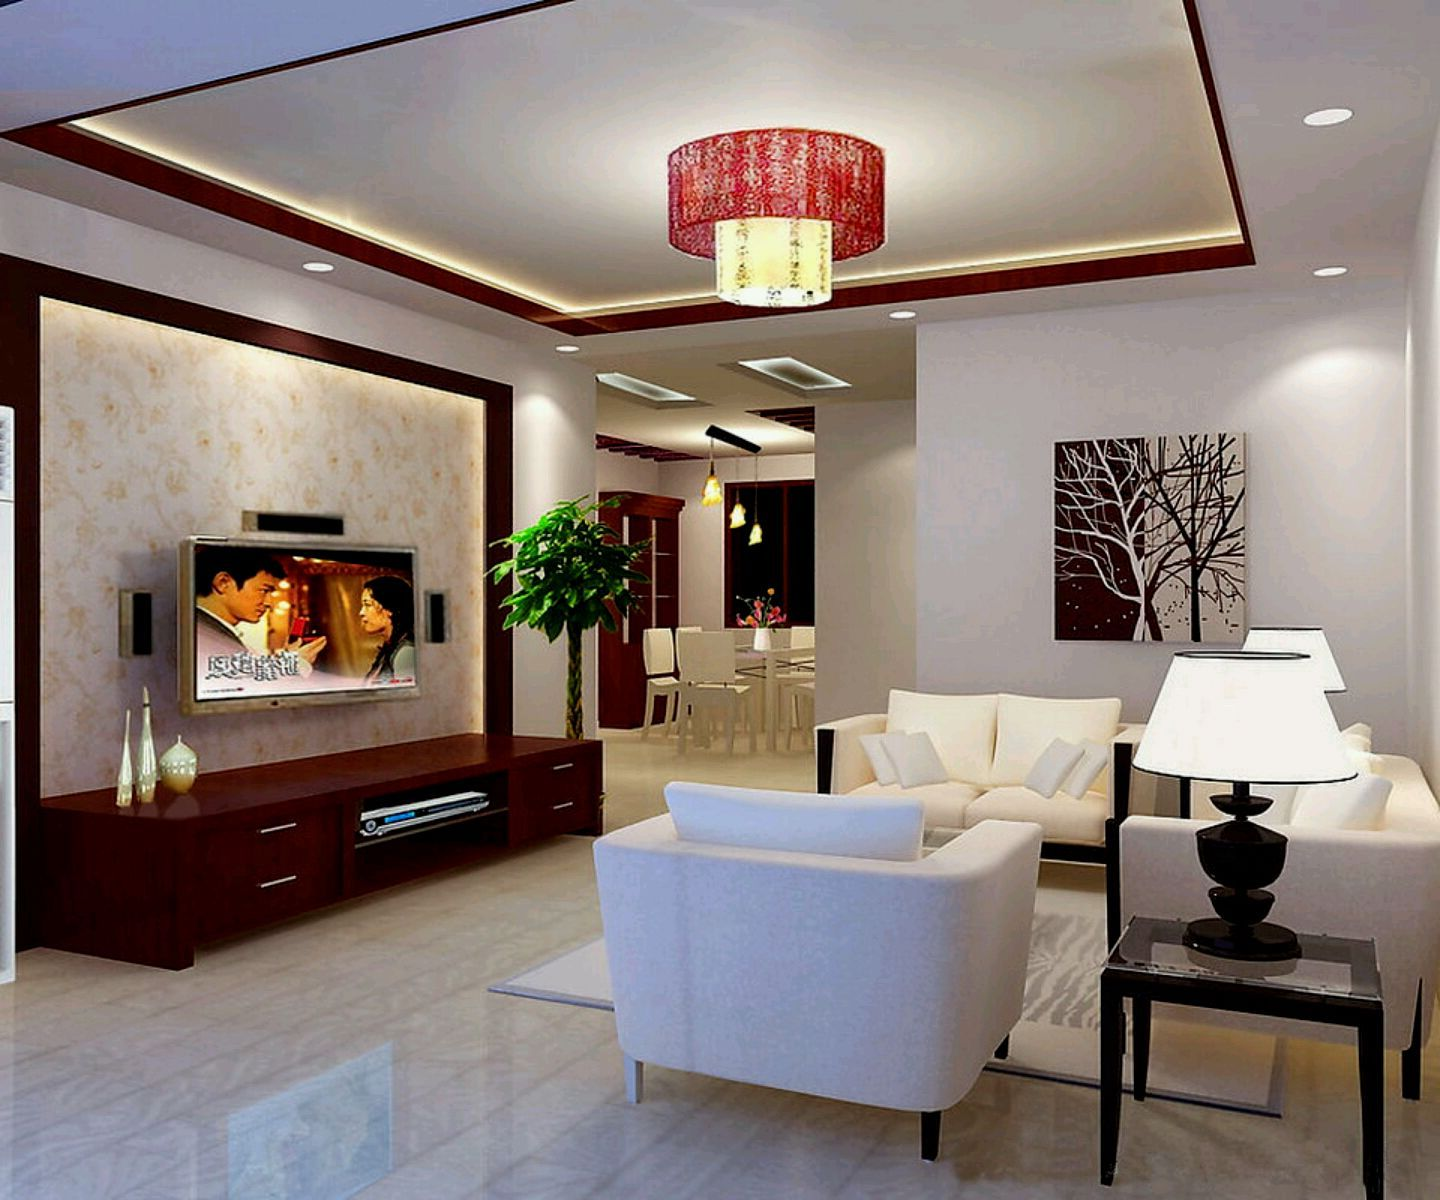 Ceiling Designs For Bedrooms Extraordinary Ceilingdesignfordrawingroominpakistanceilingdesignsfor Inspiration